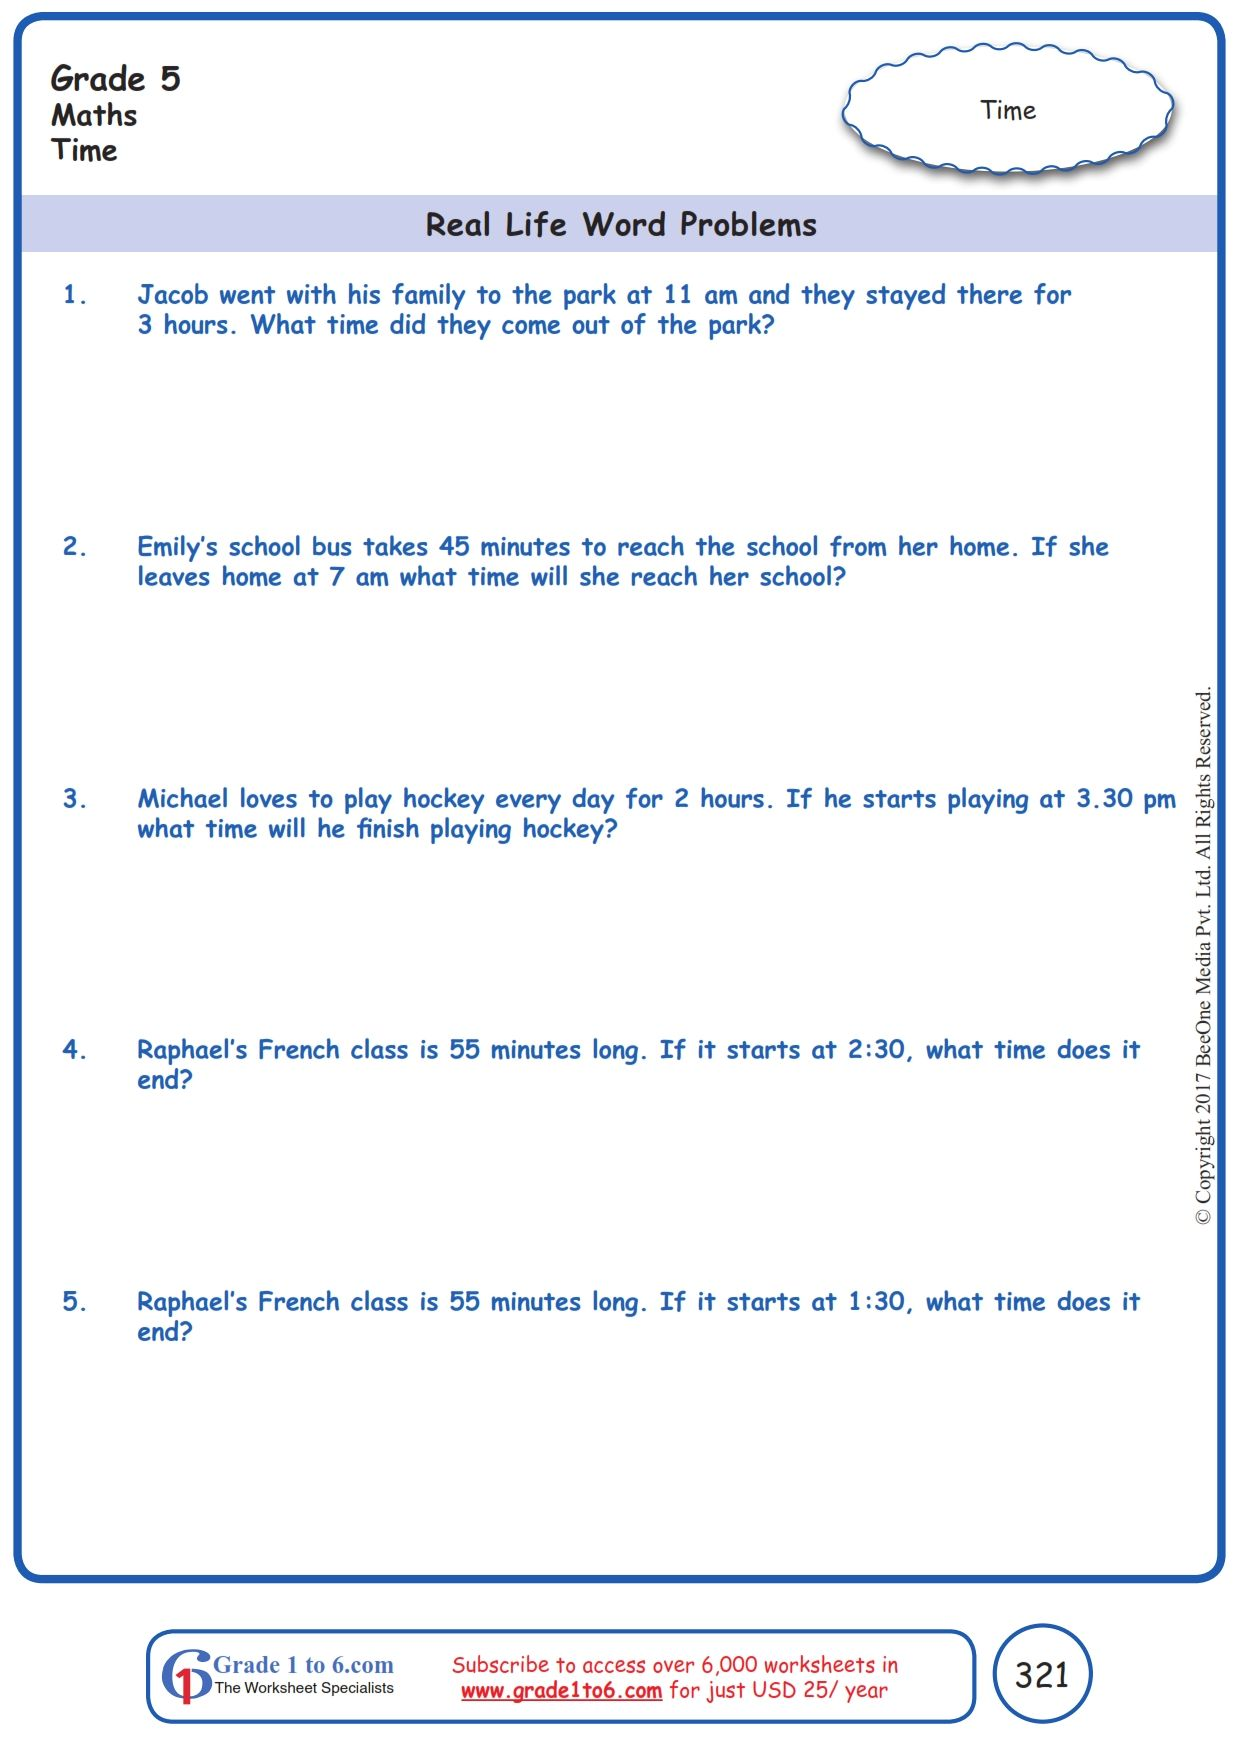 medium resolution of Worksheet Grade 5 Math Real Life Word Problems   Word problem worksheets